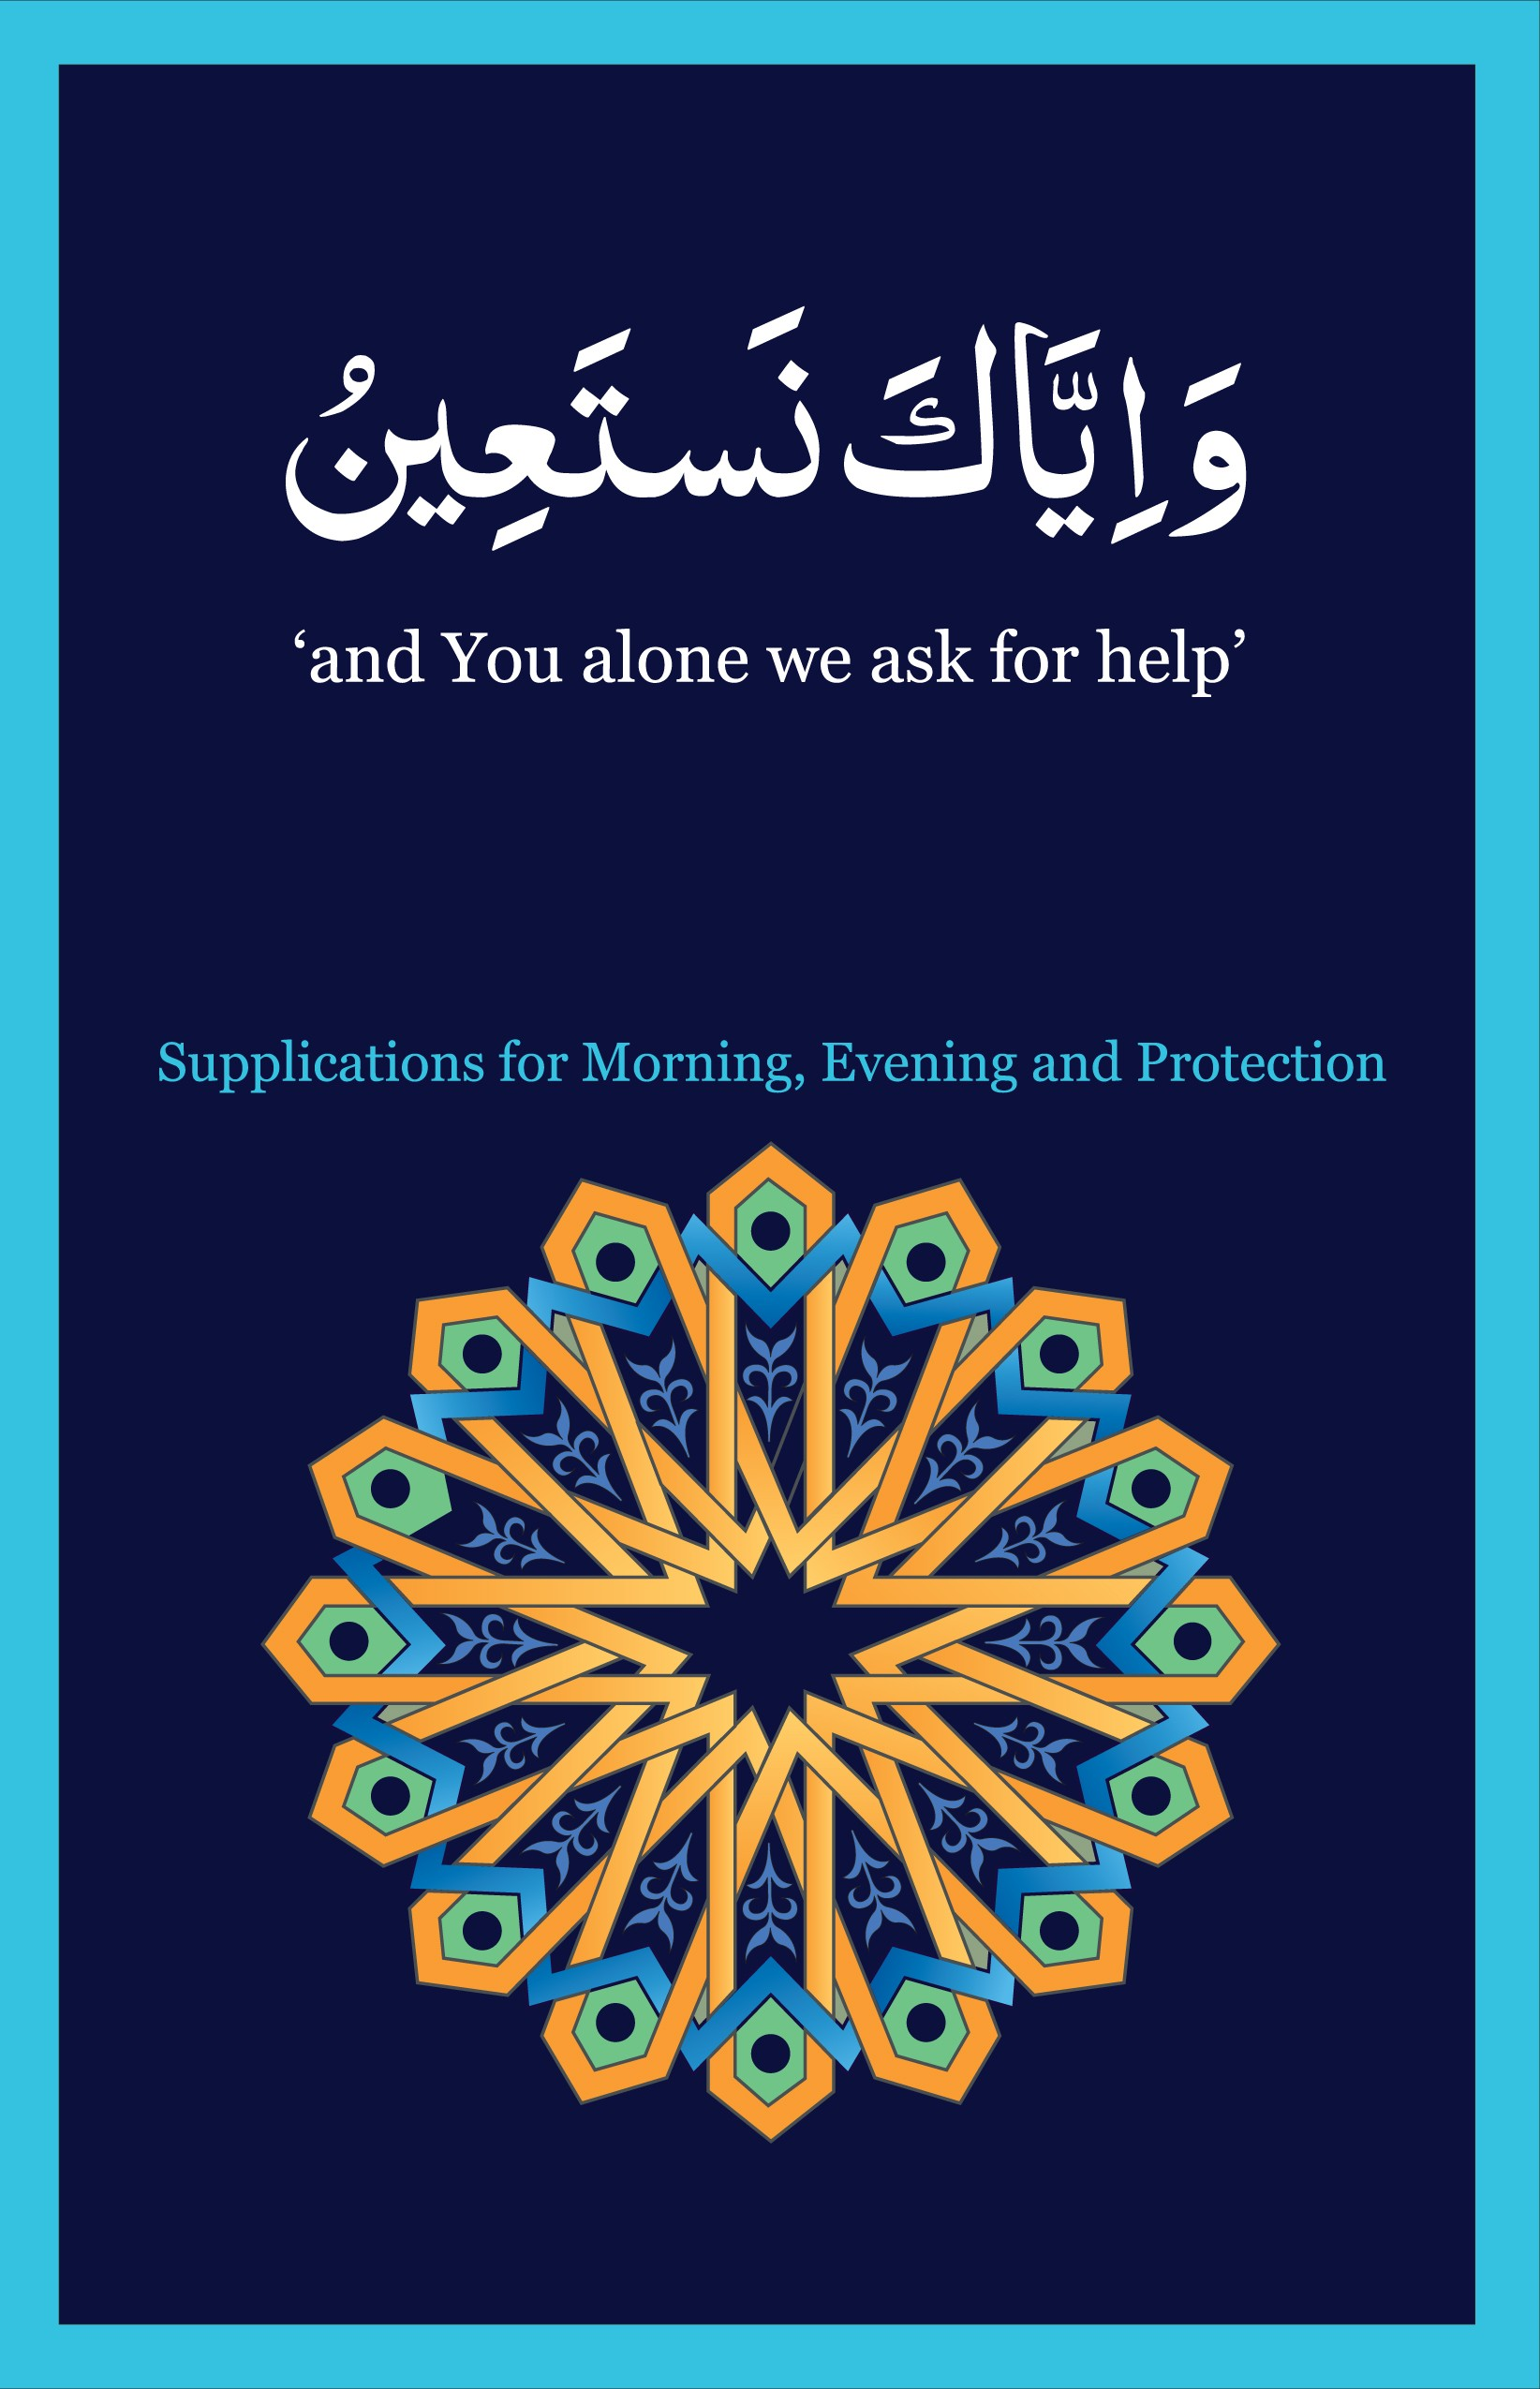 Wa Iyyaka Nasta'in - Supplications for morning evening and protection